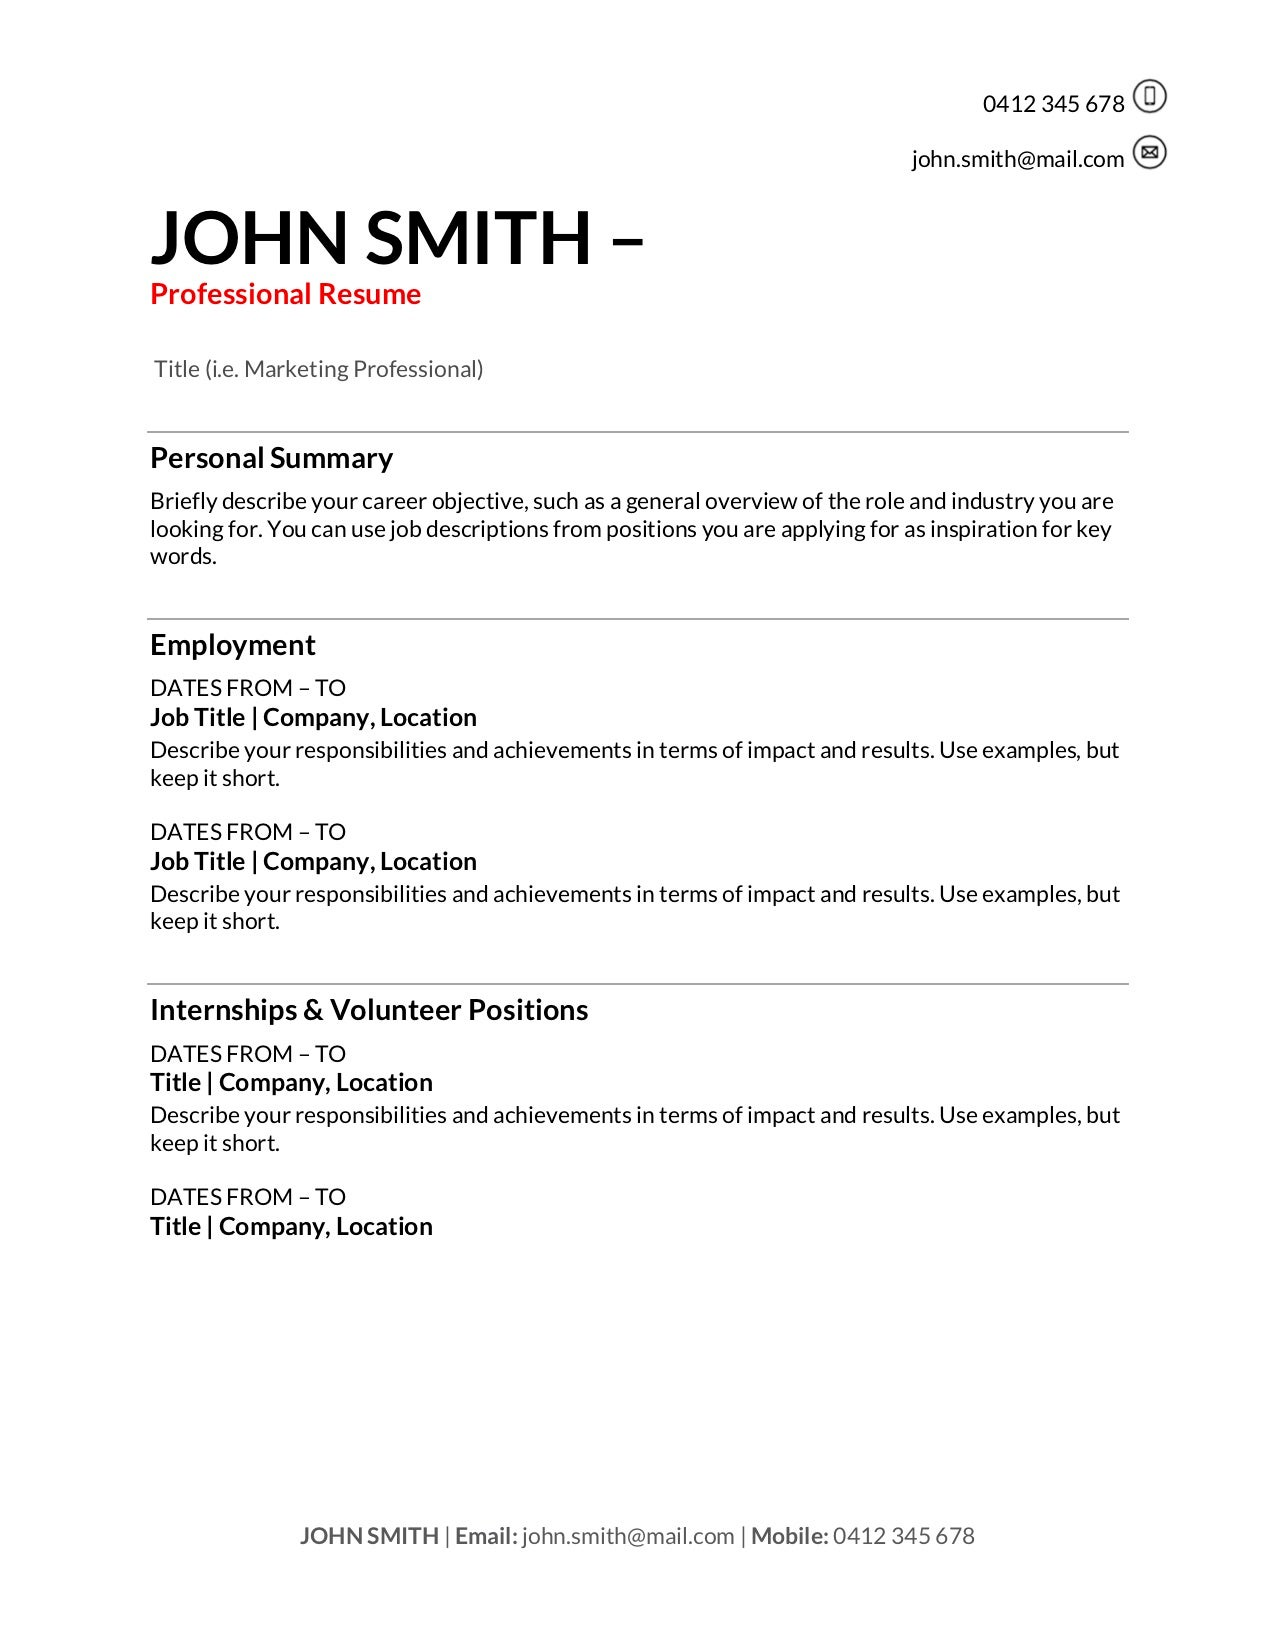 free resume templates to write in training au for all types of jobs caribbean format Resume Resume For All Types Of Jobs